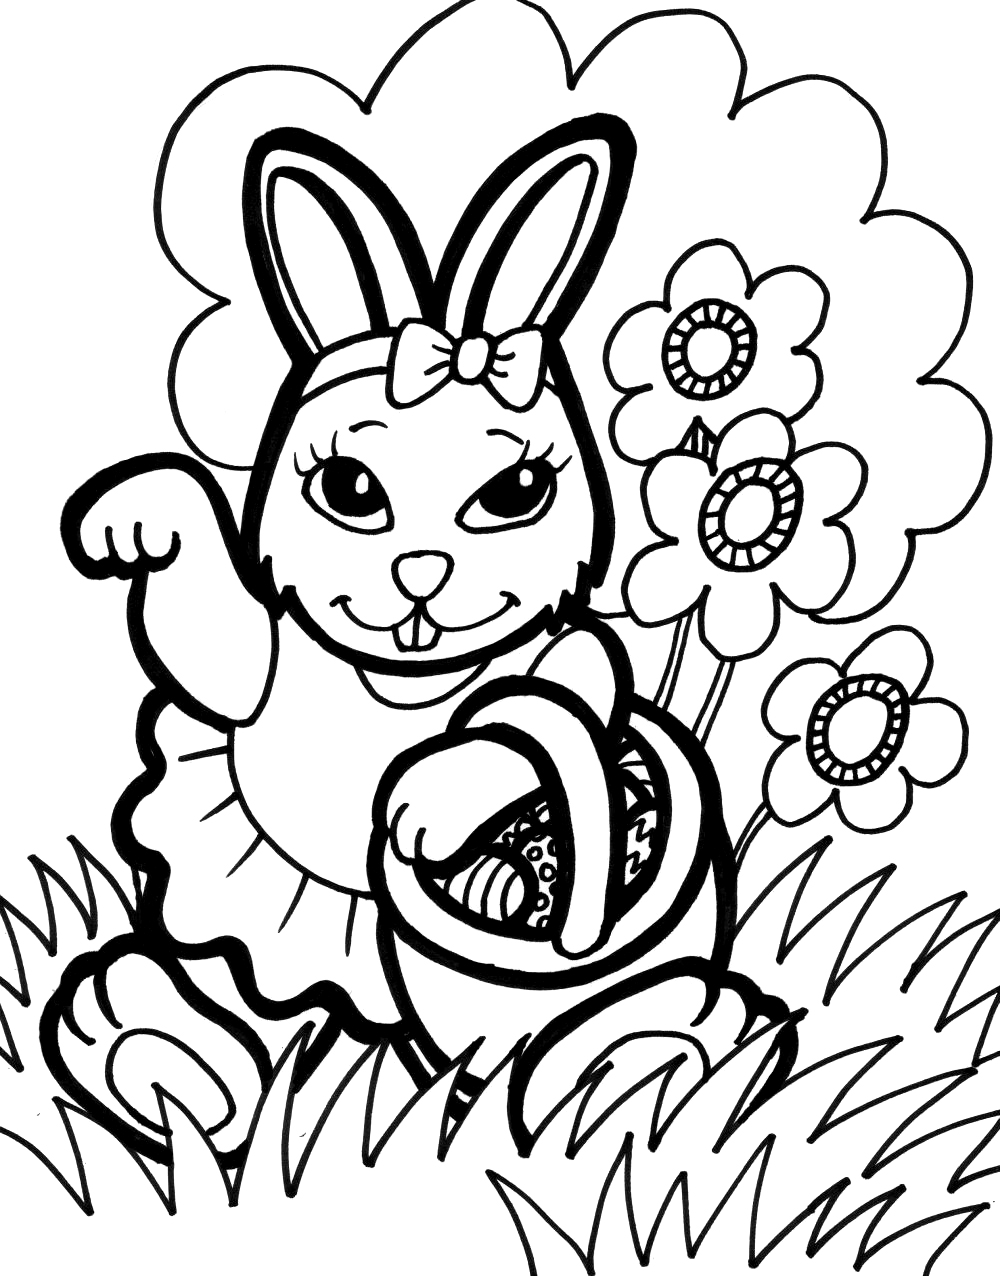 bunny coloring sheets free printable cute bunny coloring pages to download and print for free bunny coloring printable sheets free